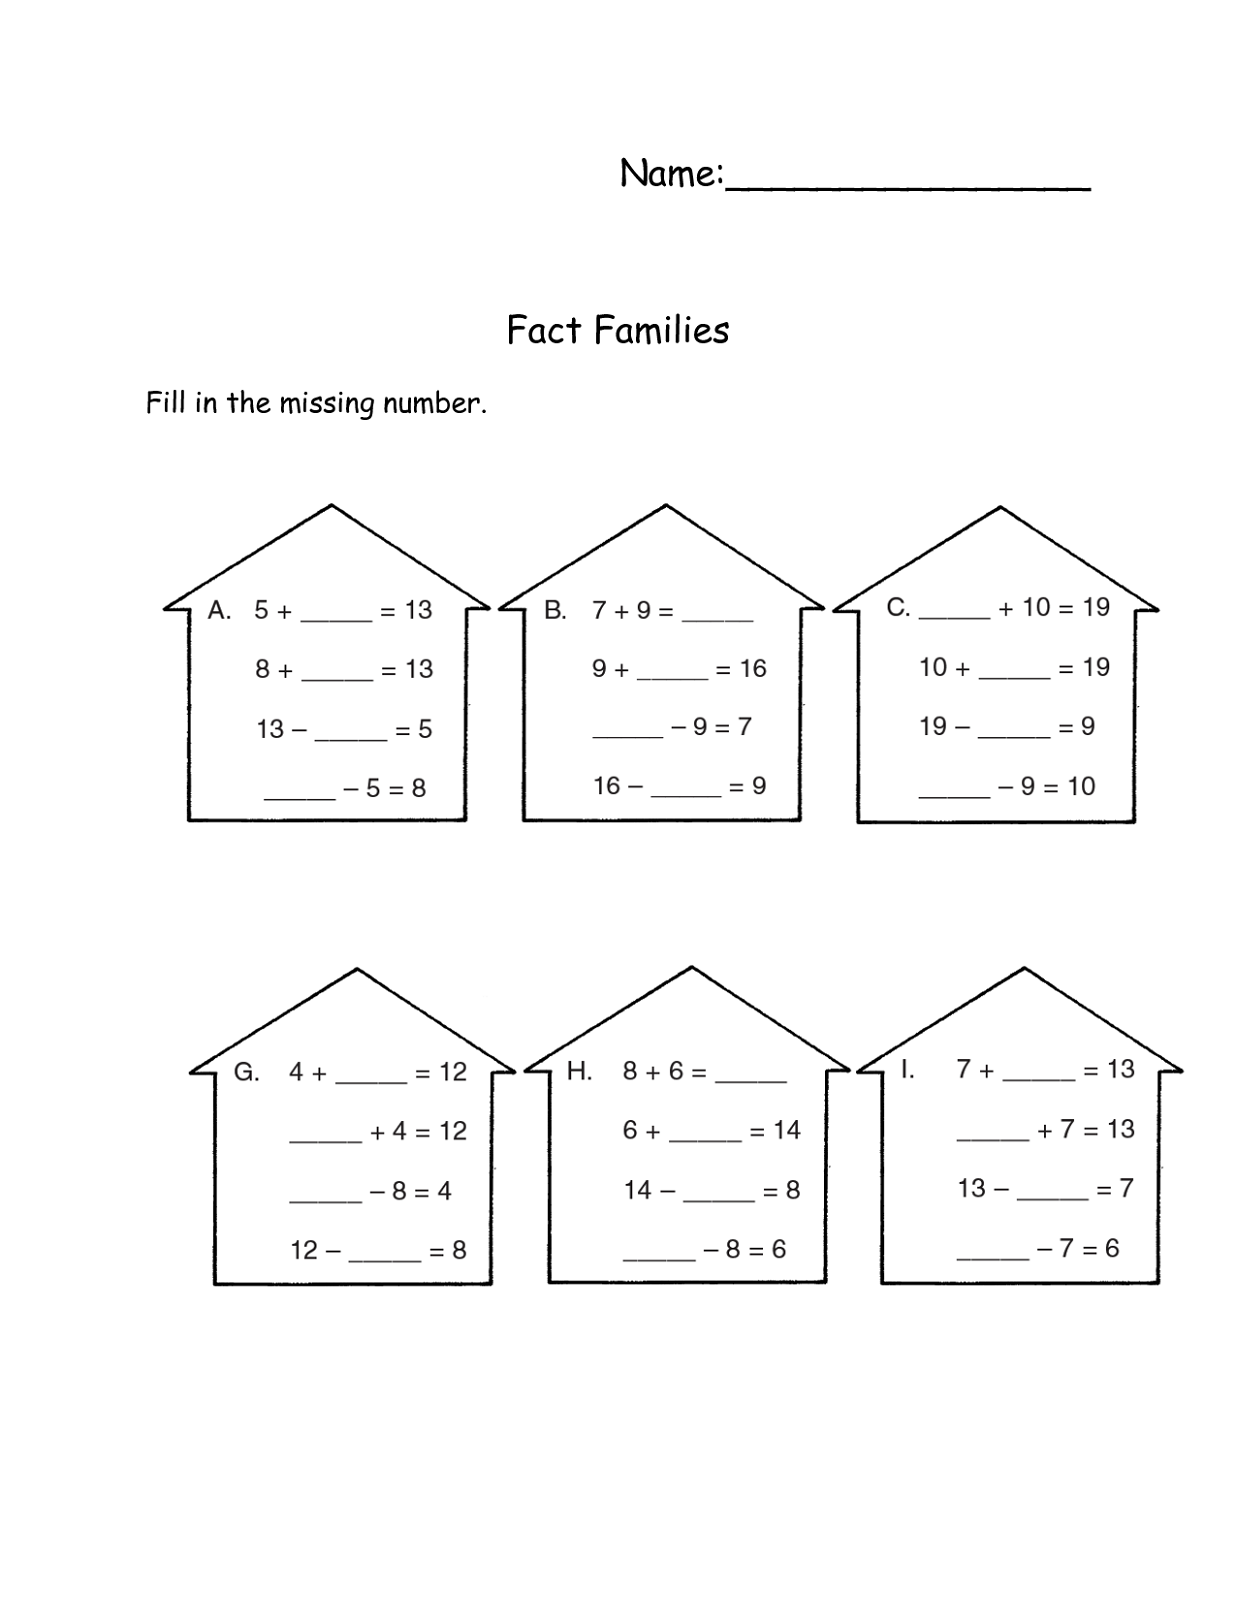 Fact Family Worksheets To Print Activity Shelter